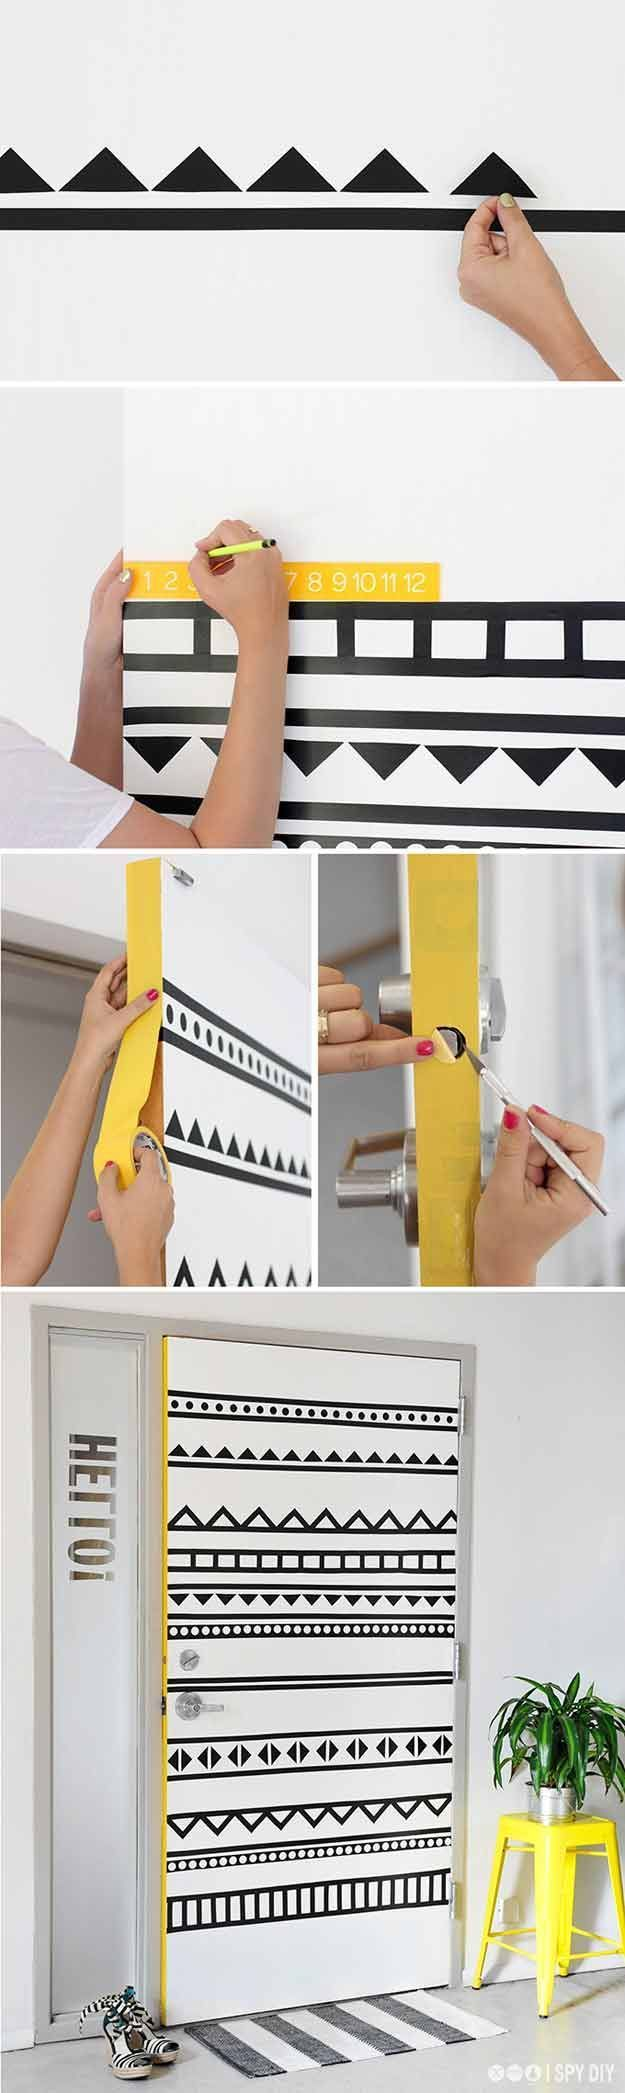 best 25 teen bedroom door ideas on pinterest white lights 37 insanely cute teen bedroom ideas for diy decor